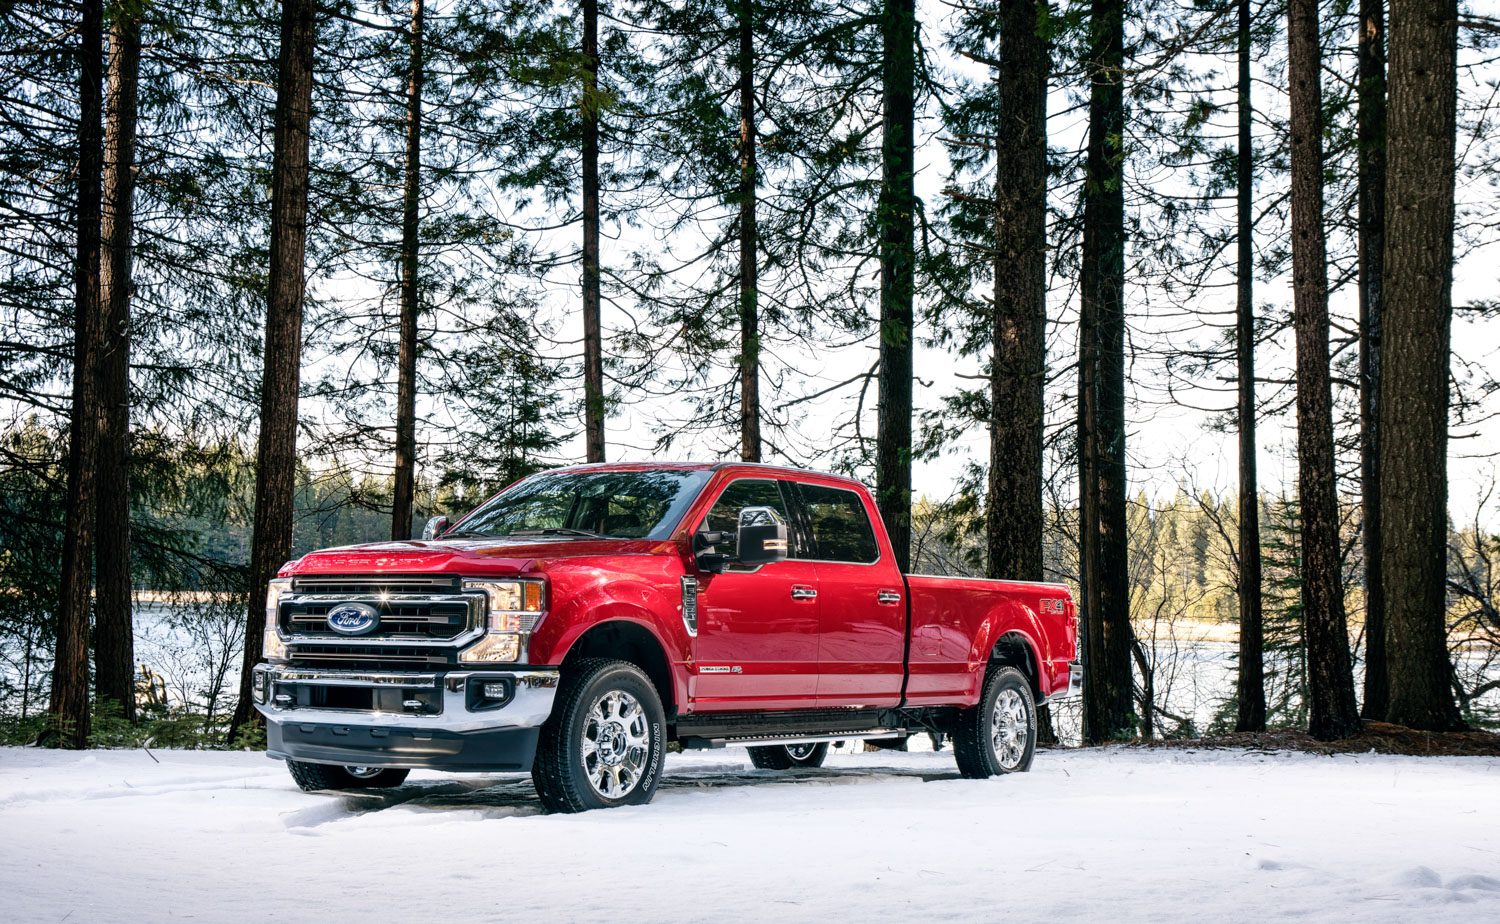 2020 Ford F-250 Super Duty snow 3/4 front